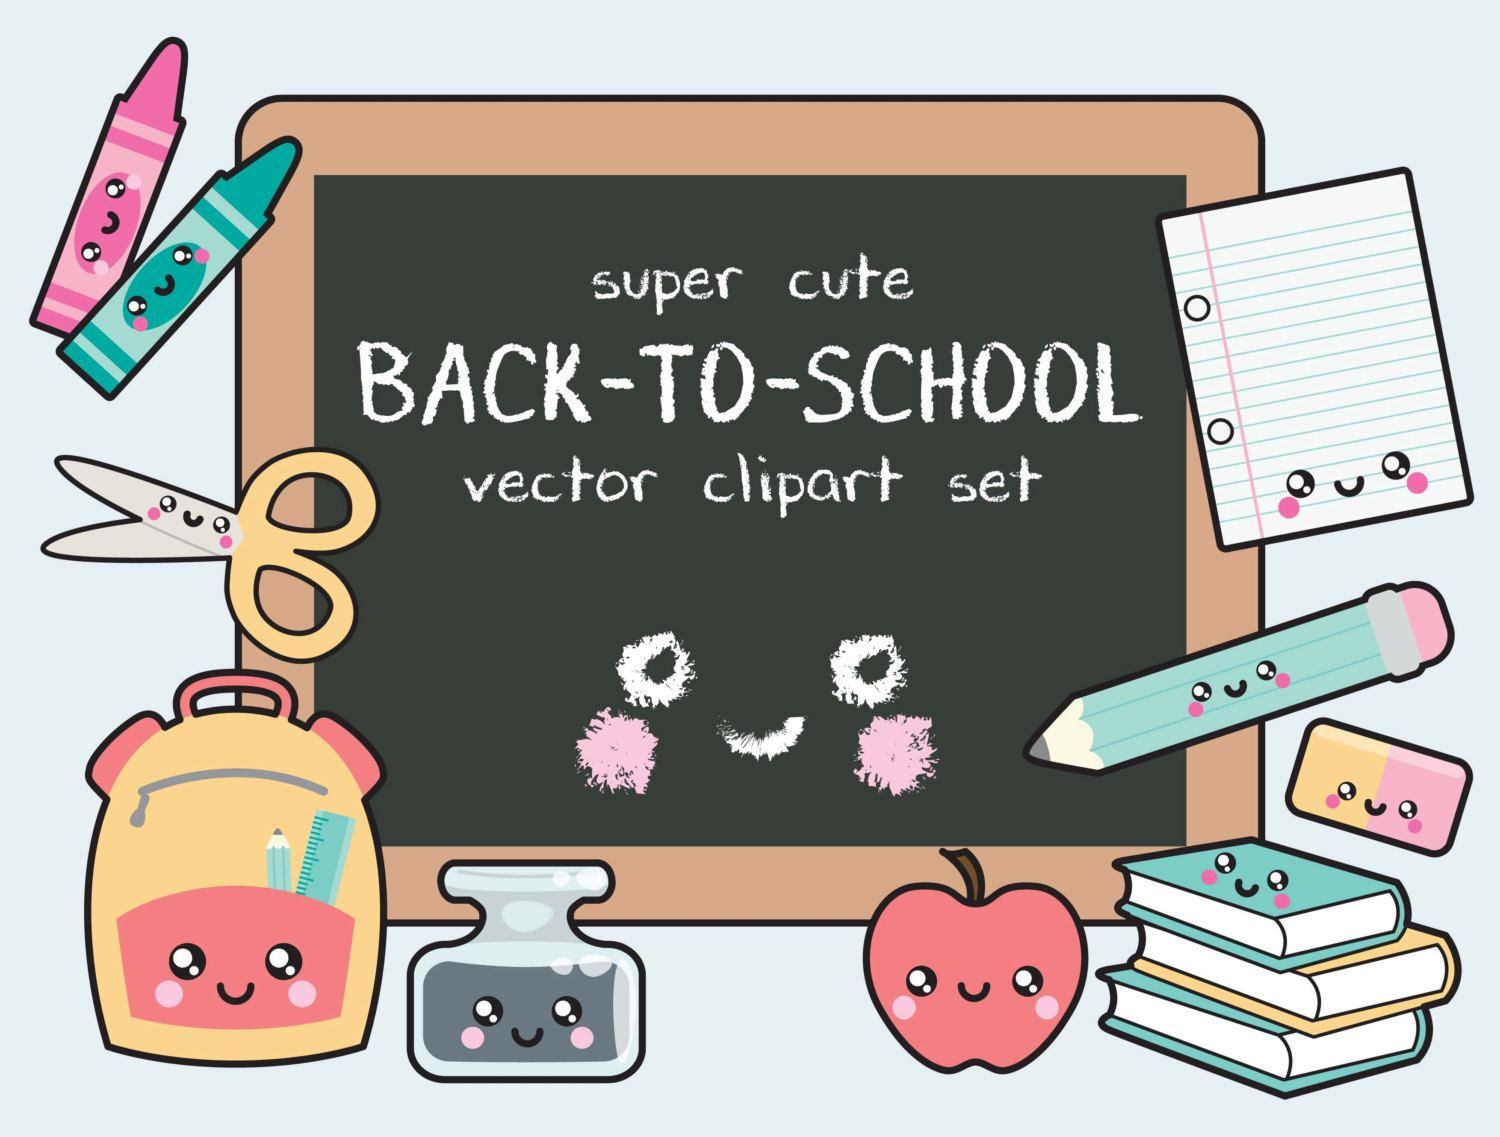 premium vector clipart - kawaii back to school clipart - kawaii clip